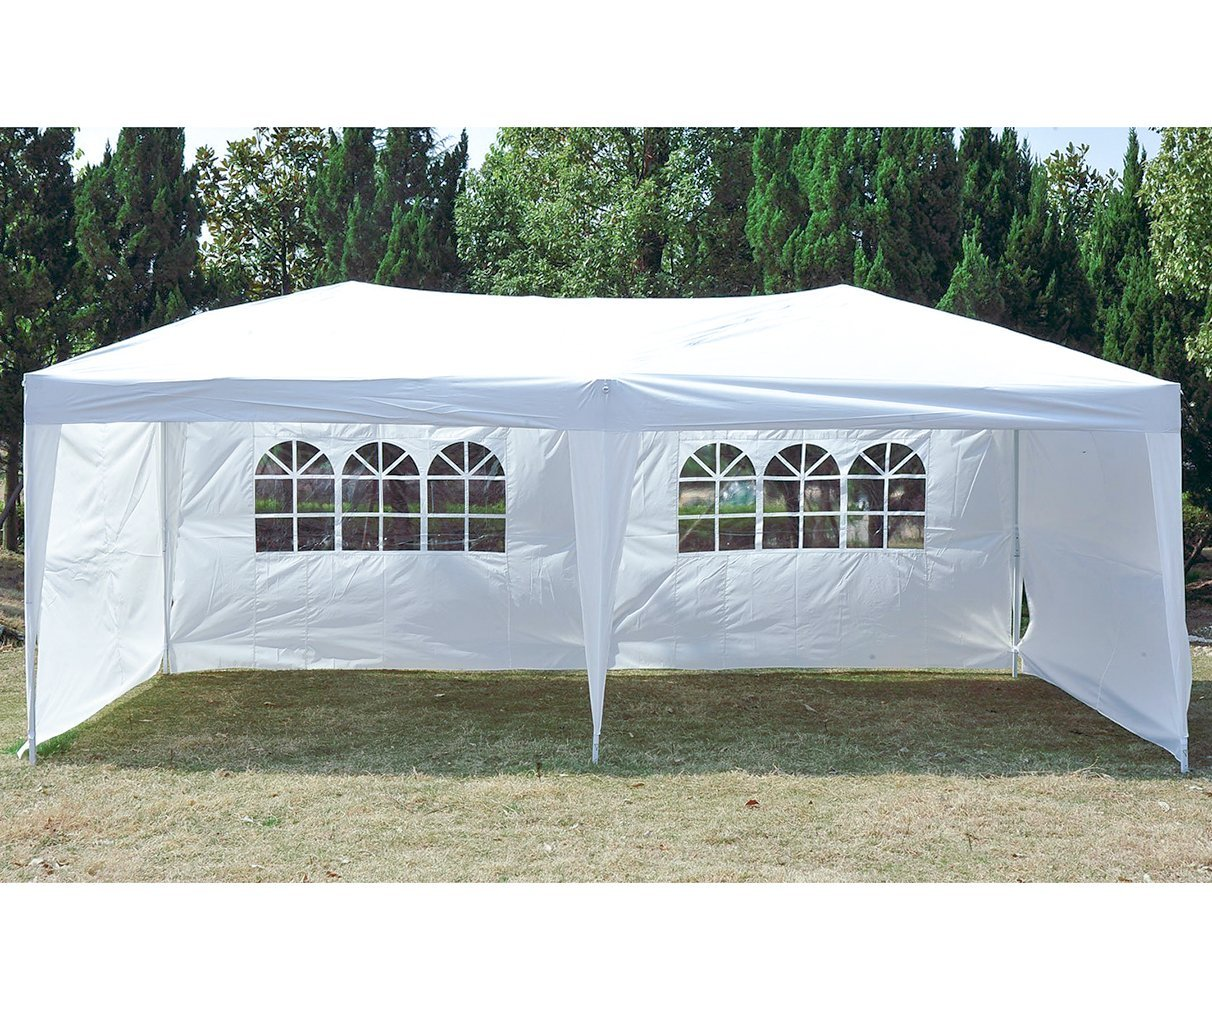 Pop-Up Canopy Tent With Sidewalls 10' x 20' Outdoor Party Gazebo Tent by